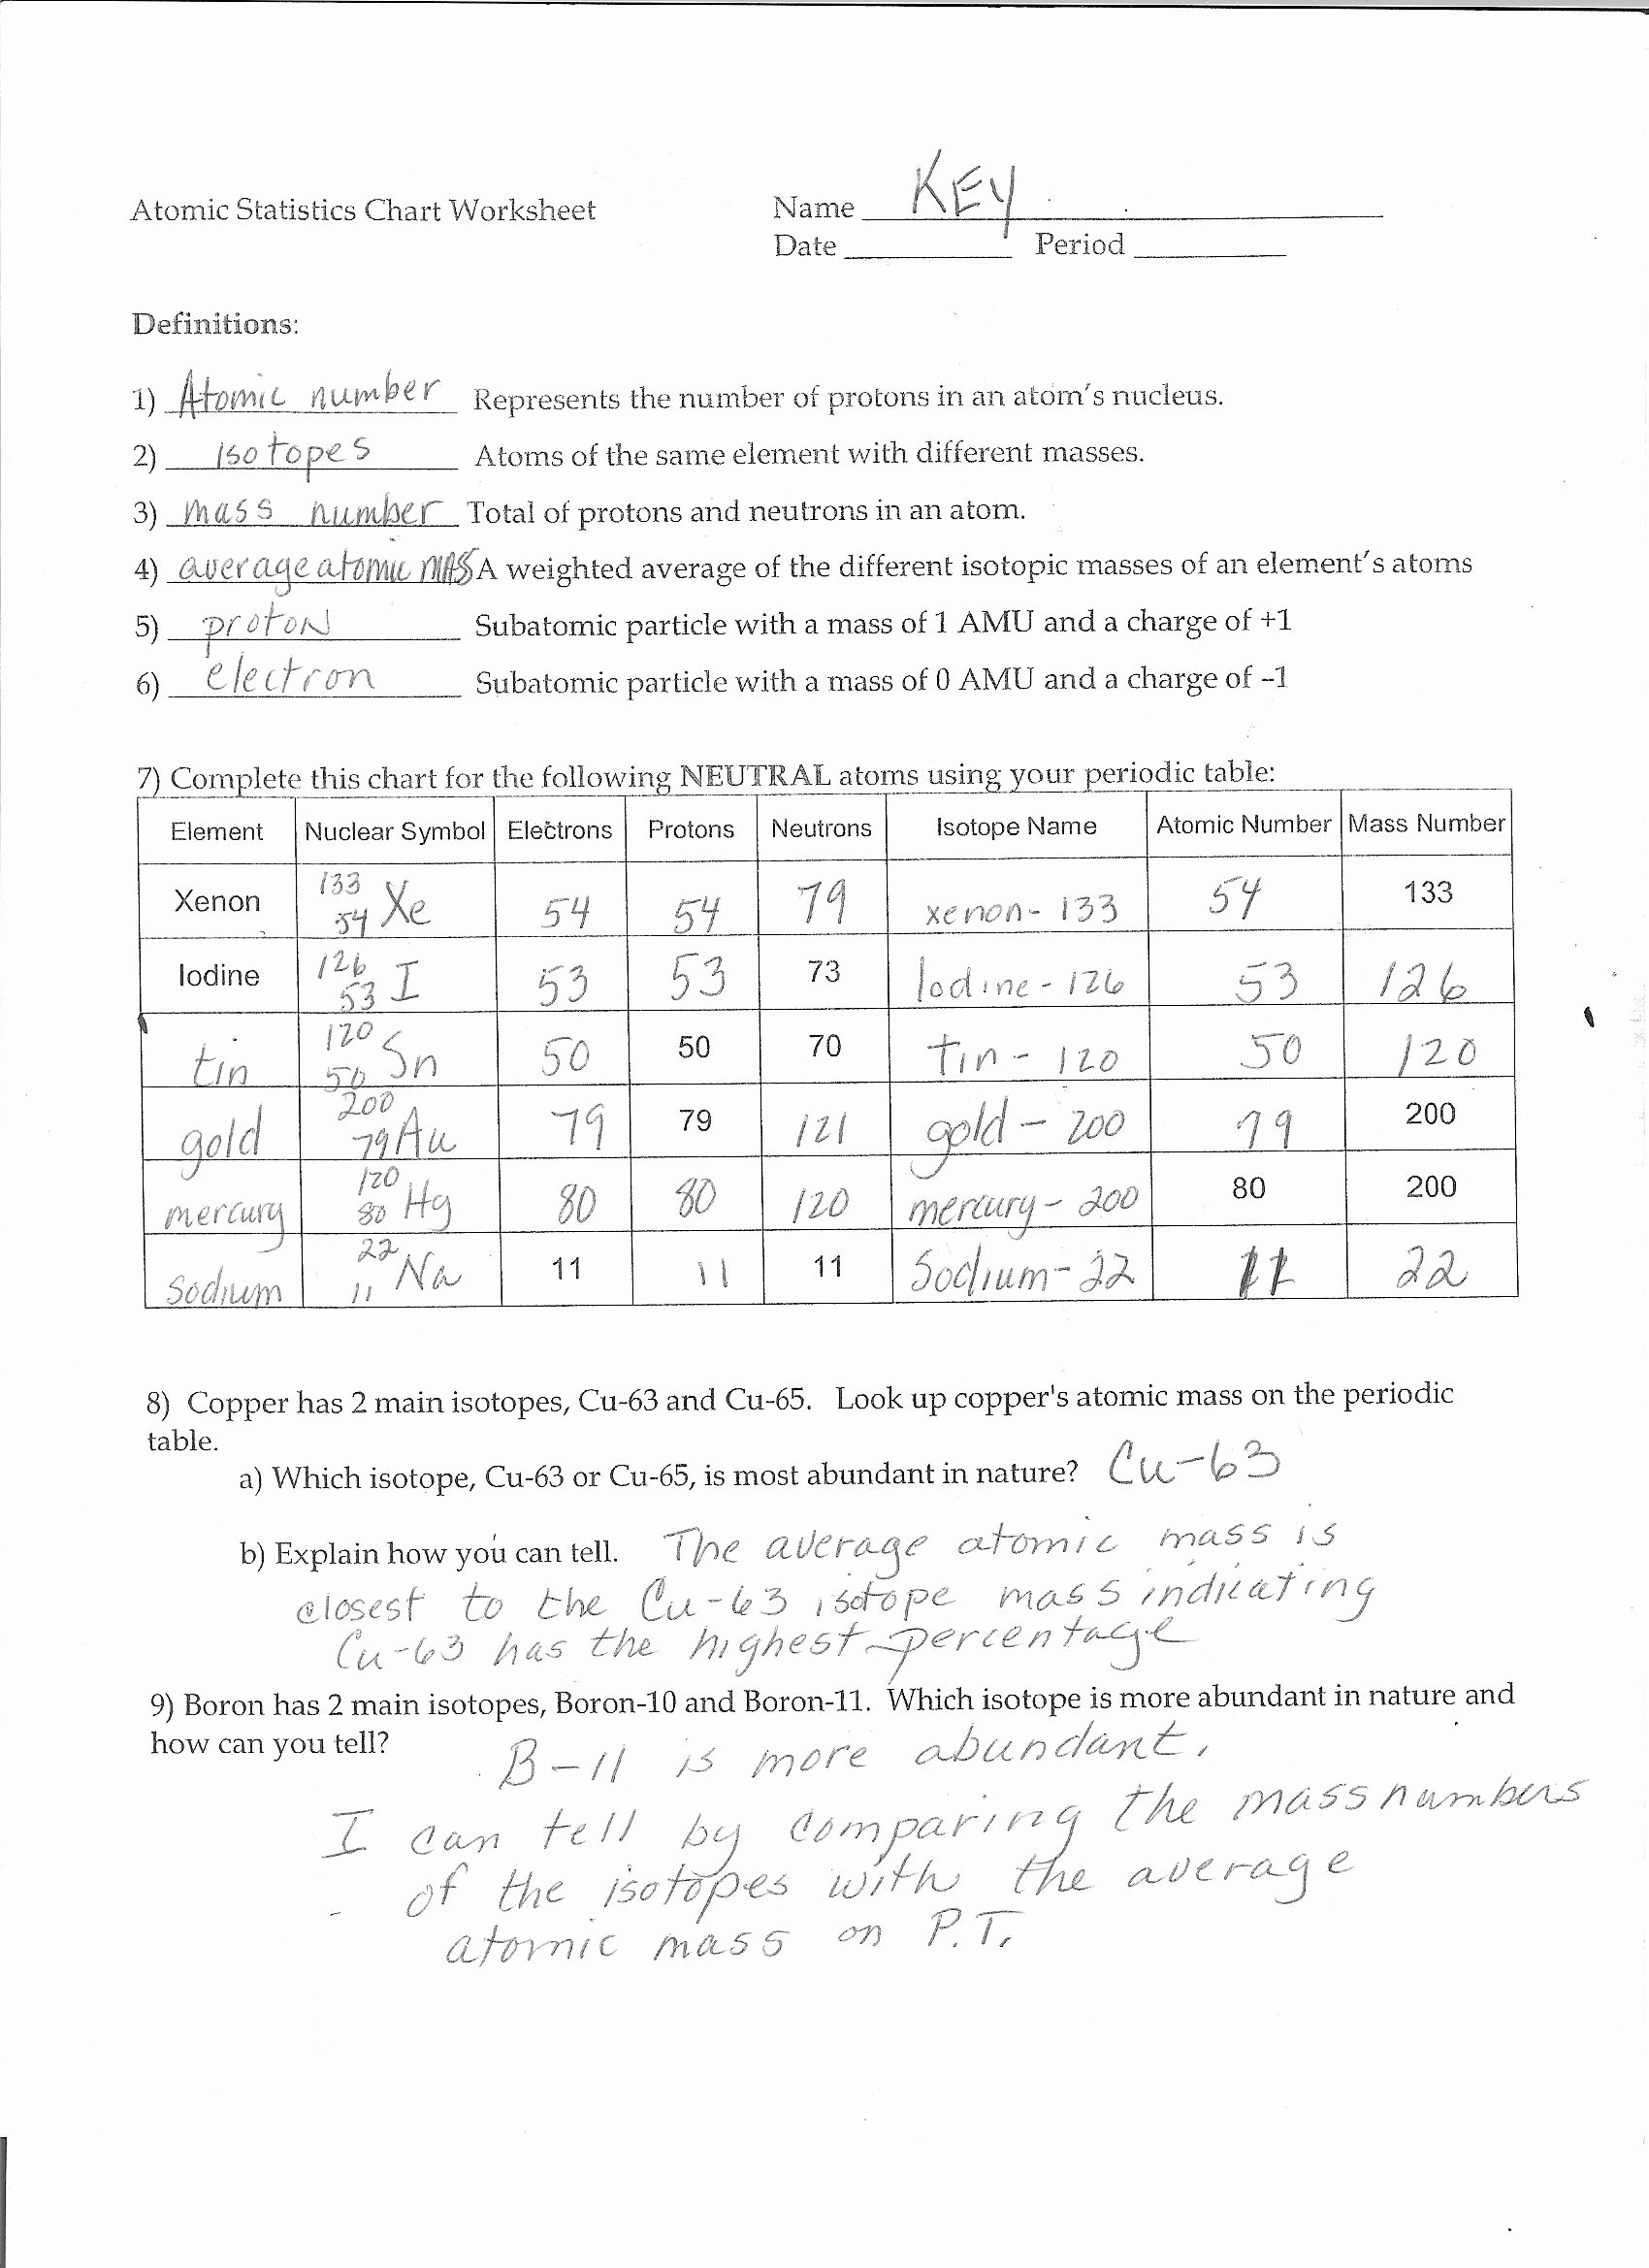 Development Of atomic theory Worksheet Ideas Worksheet Development atomic theory Answers